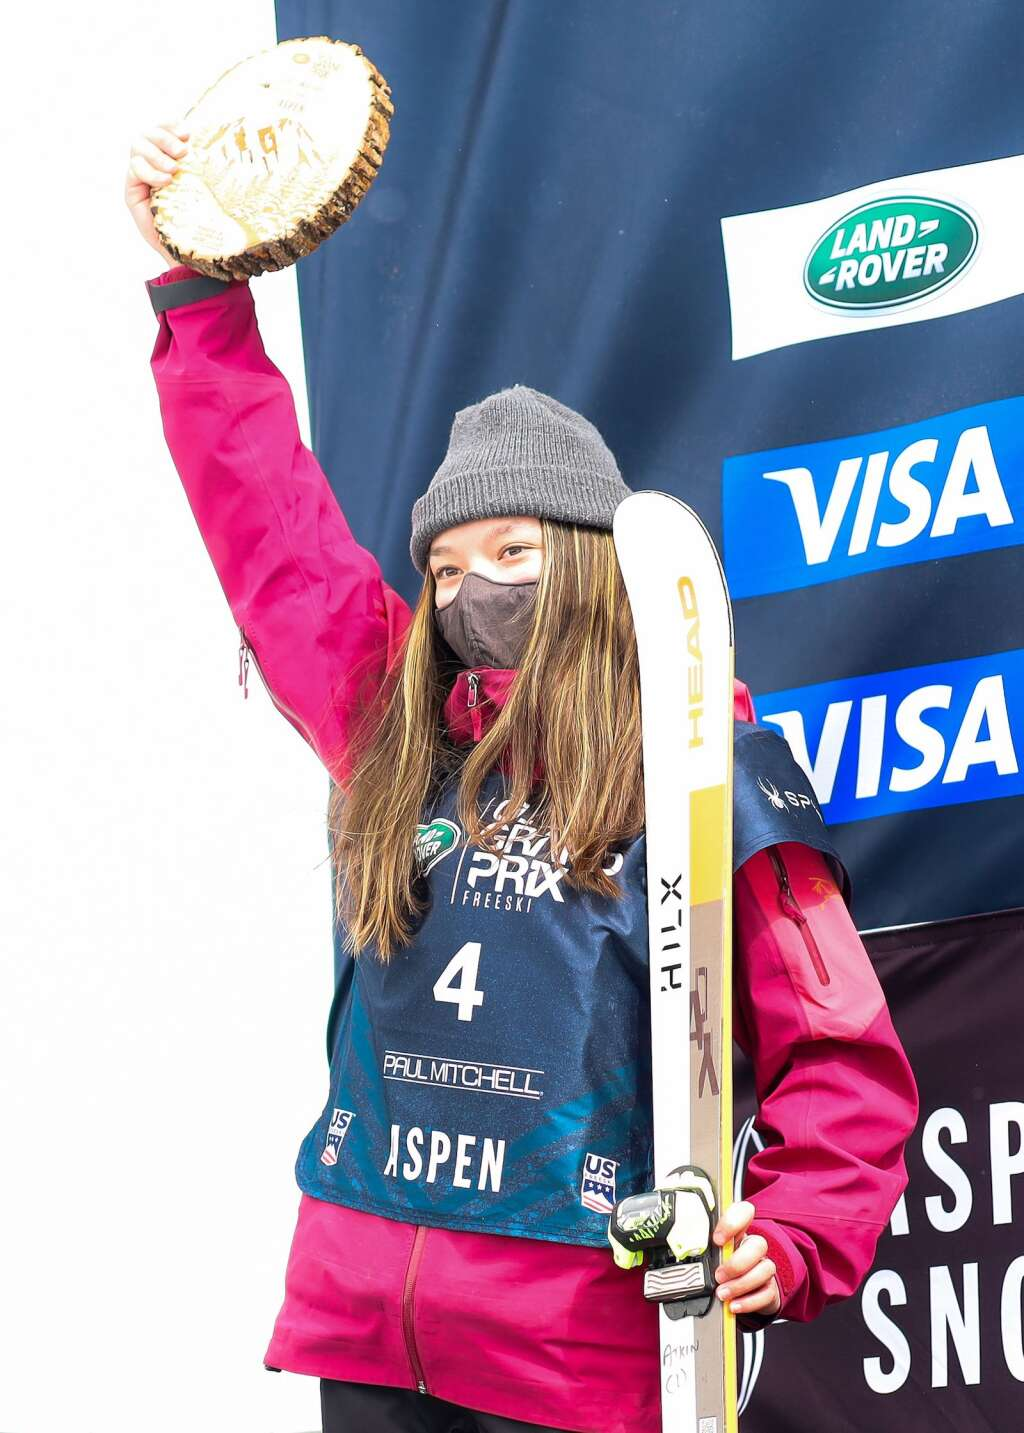 Zoe Atkin stands on the podium after the women's freeski halfpipe final of the U.S. Grand Prix on Sunday, March 21, 2021, at Buttermilk Ski Area in Aspen. Photo by Austin Colbert/The Aspen Times.